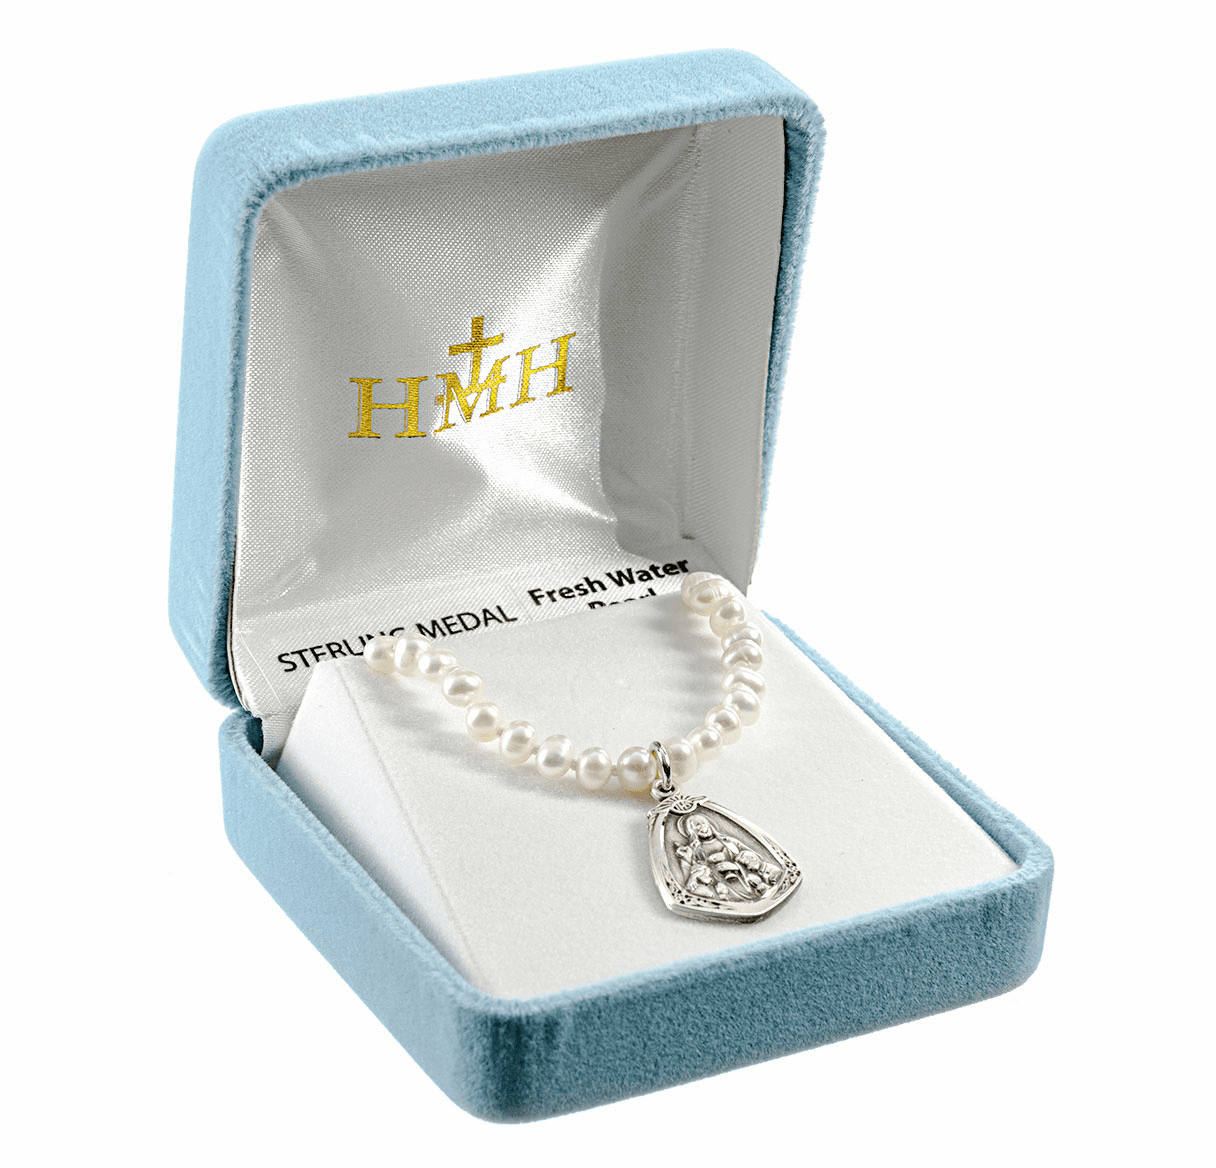 HMH Religious Sterling Silver Communion Jesus Freshwater Pearls Necklace